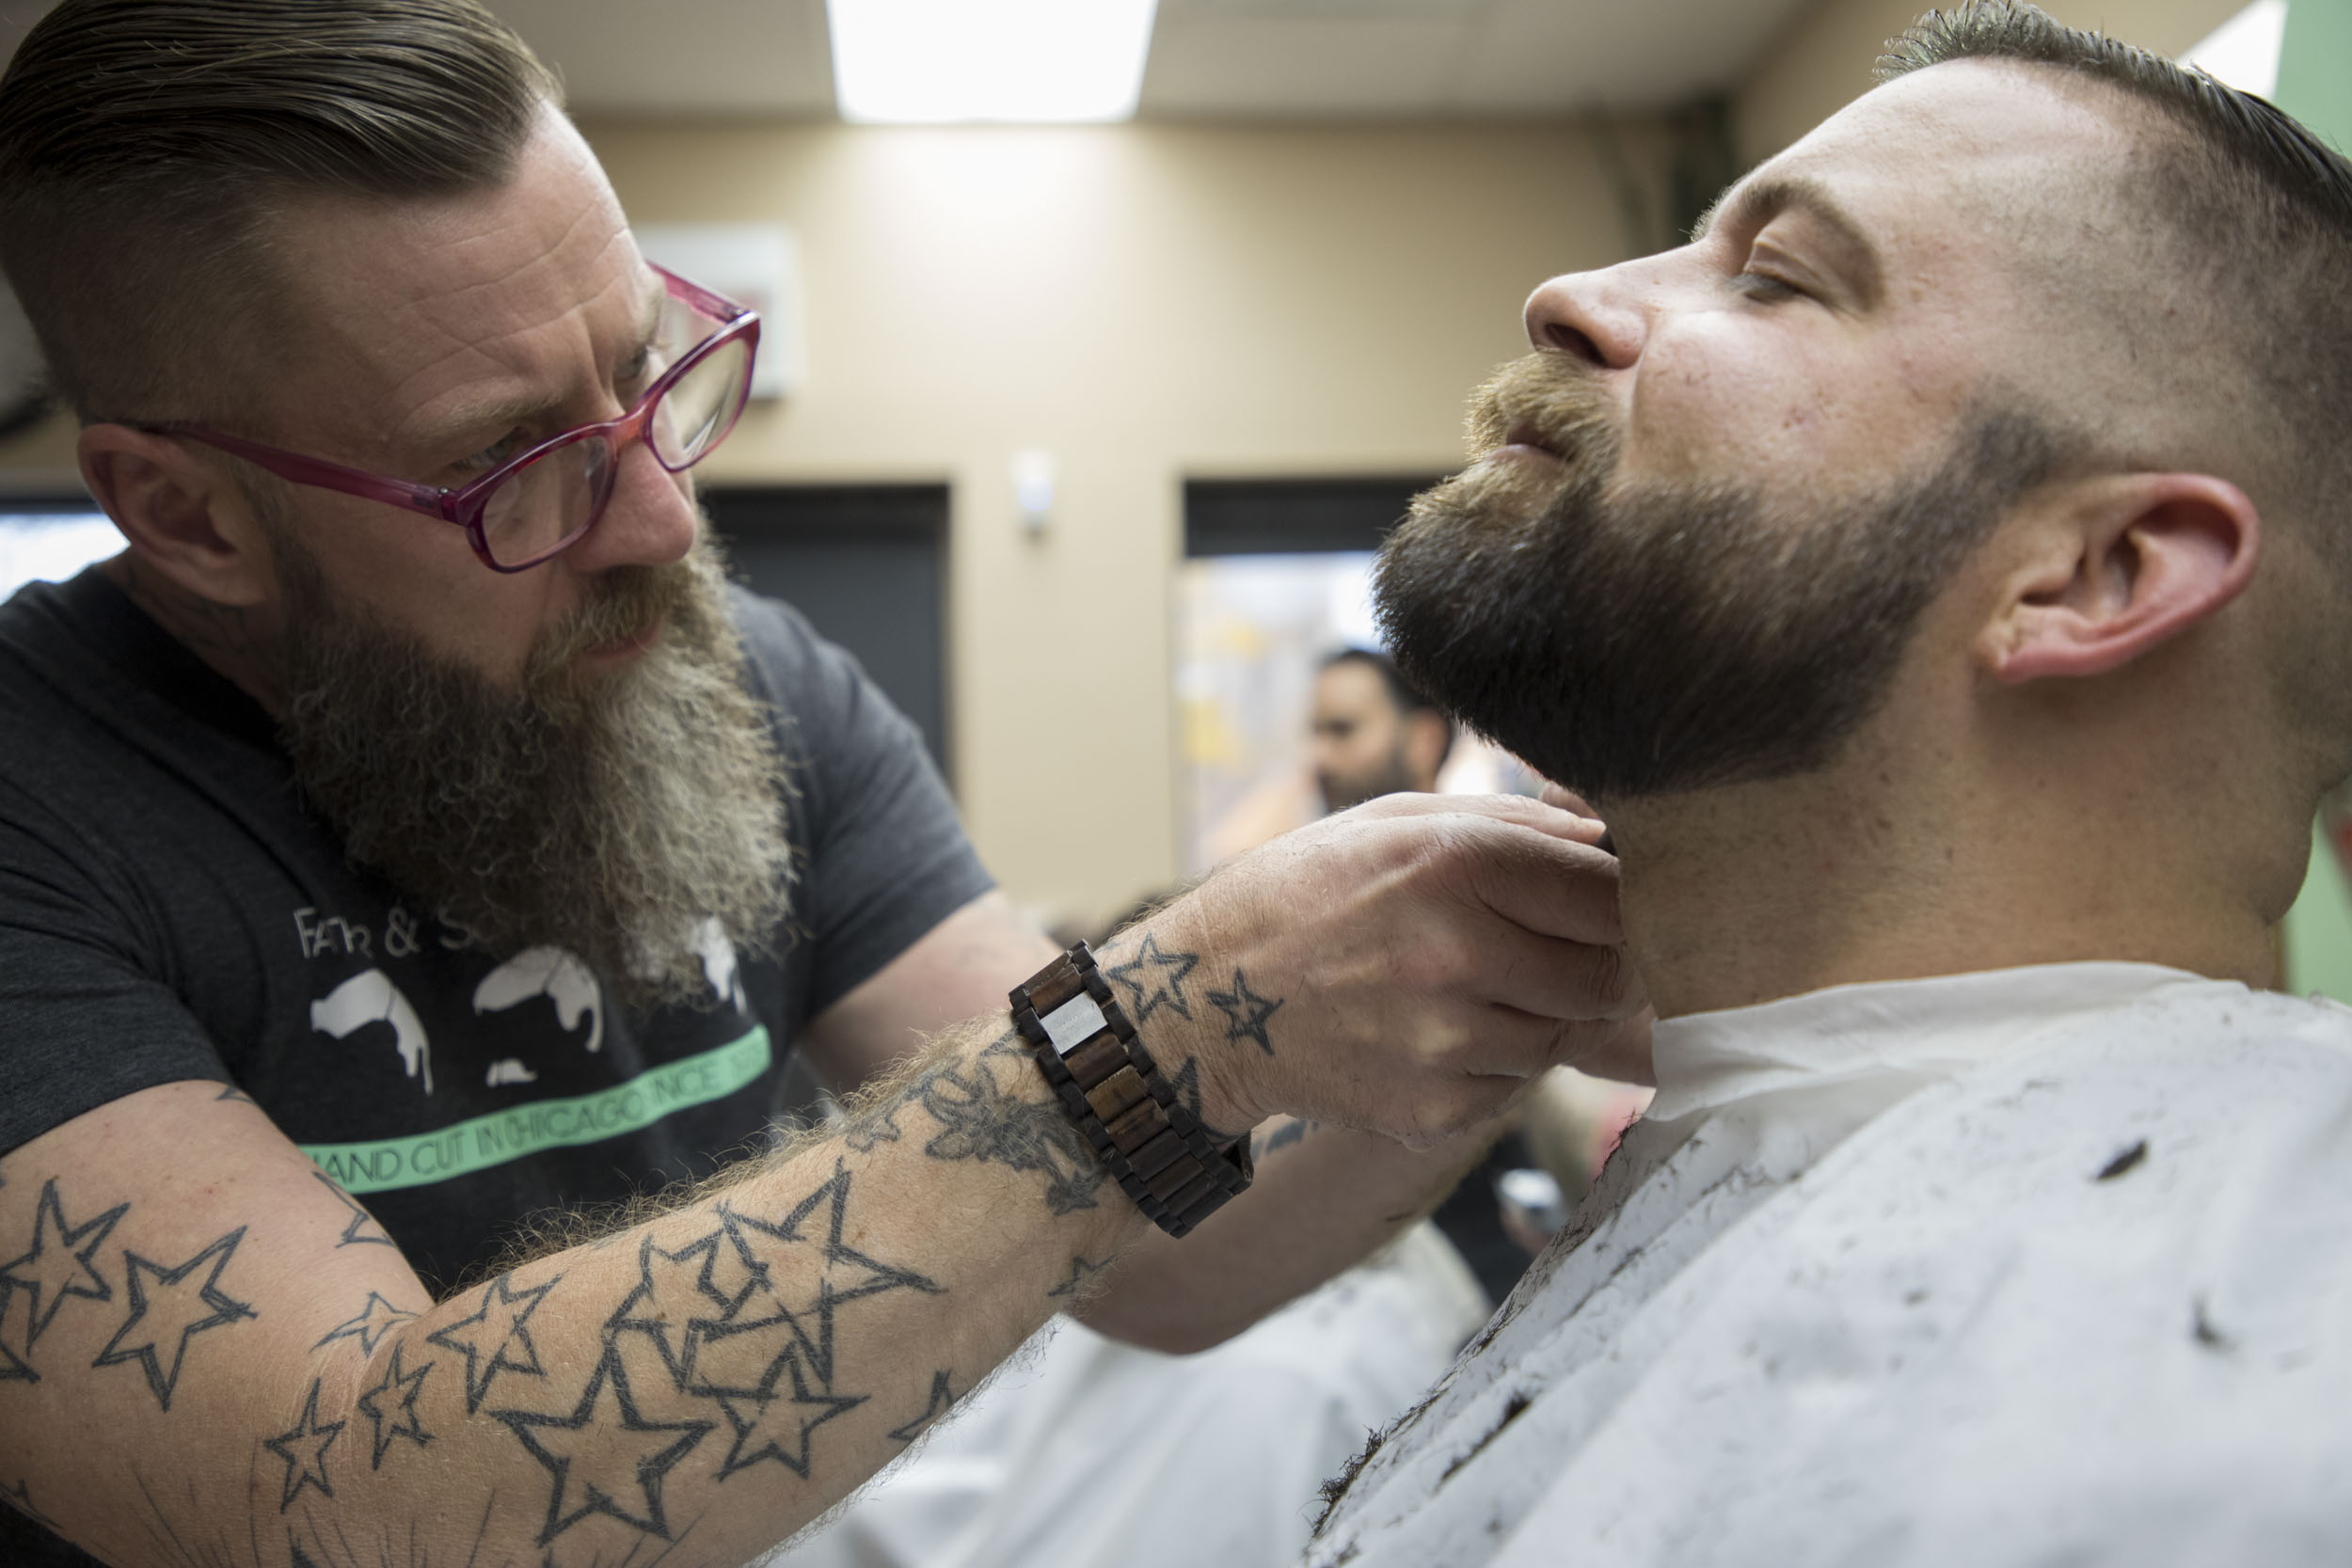 Mitch Koonce trims Kyle Wood's beard. (Andrew Gill/WBEZ)